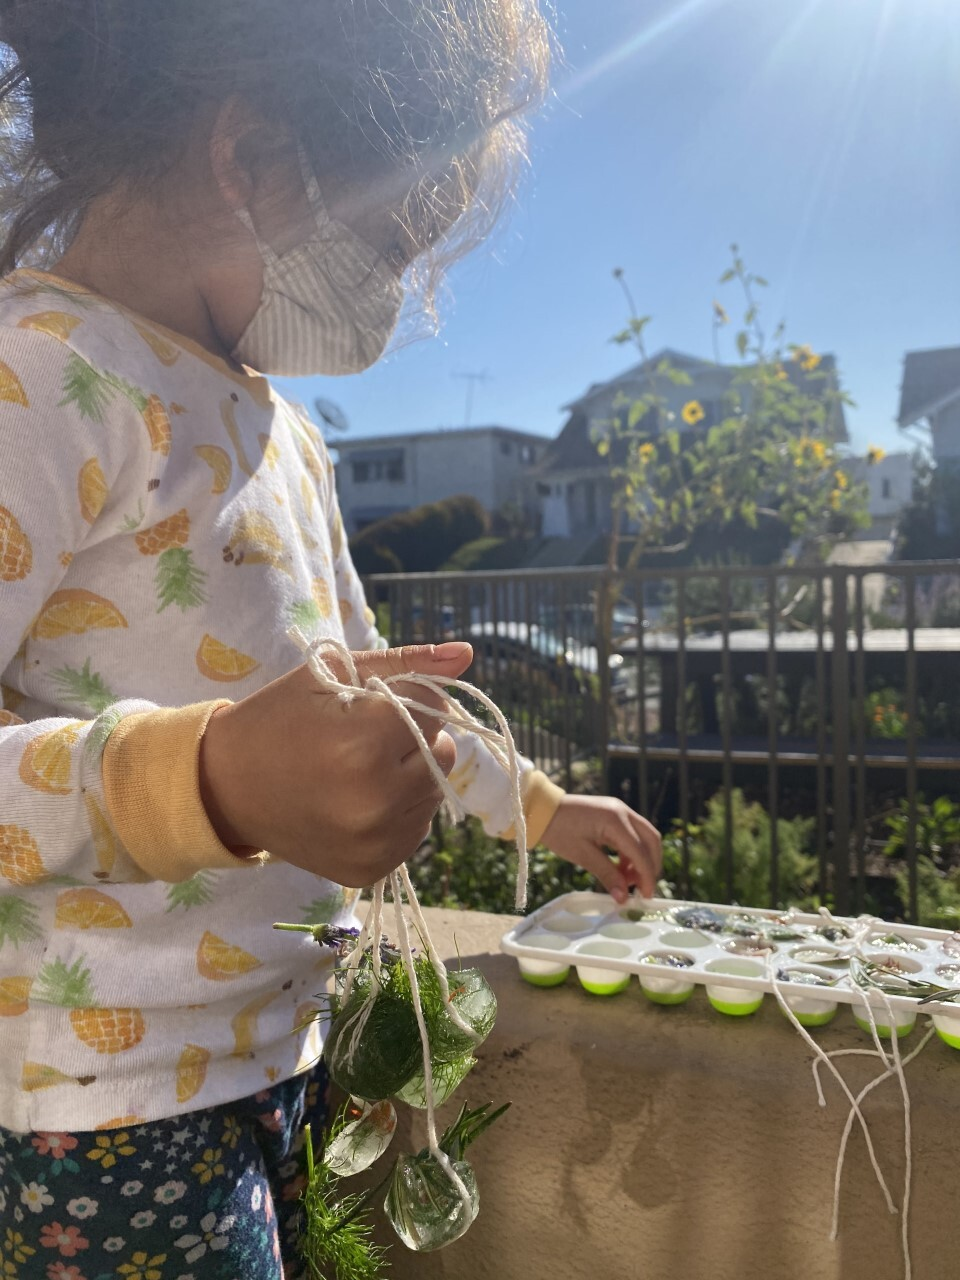 A toddler pulls out frozen green plants on a strong from an ice tray.